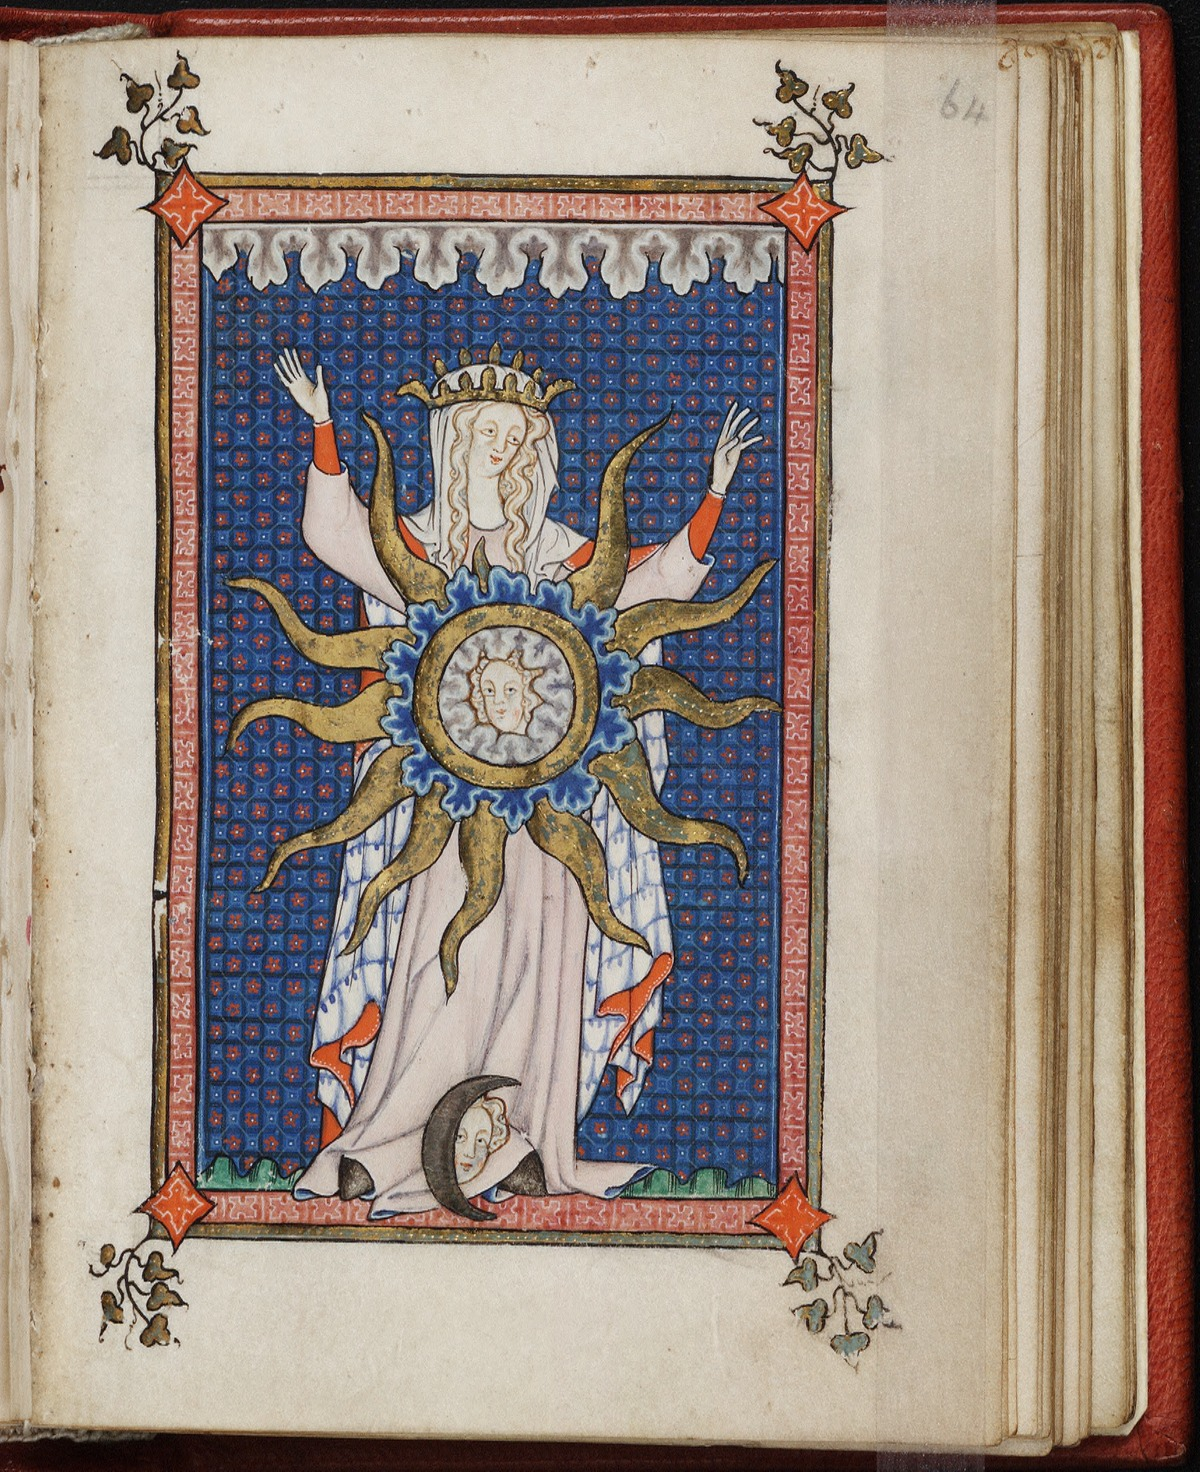 1290-1310 Rothschild Chronicles Beinecke Rare Book and Manuscript Library, Yale University MS 404 fol 64r